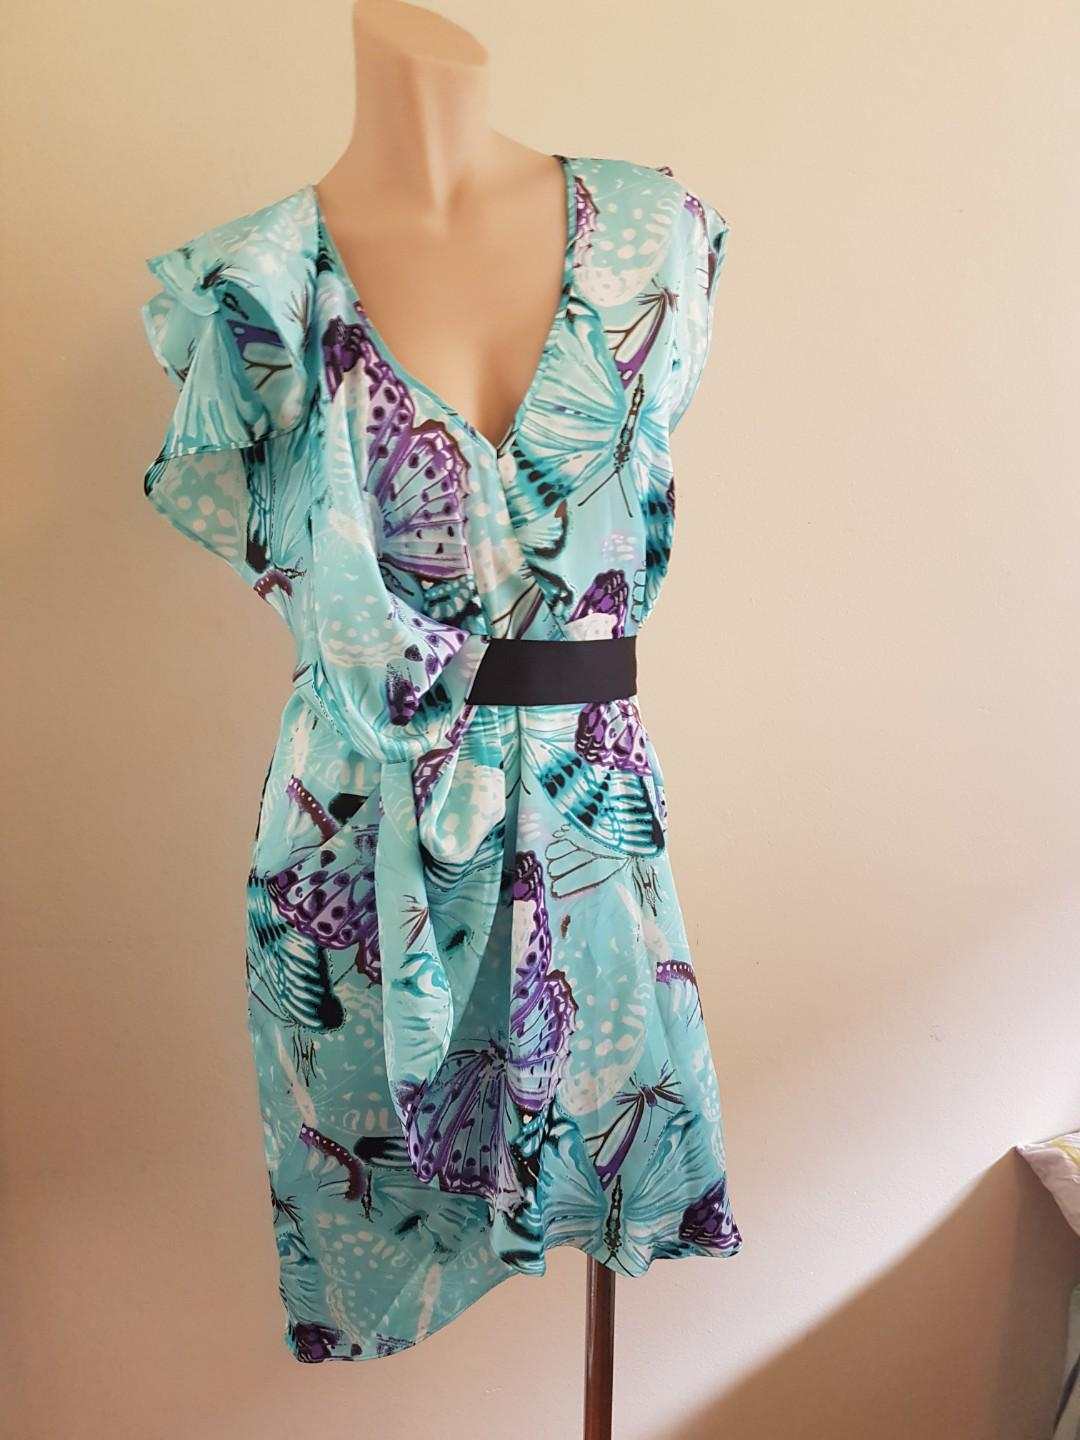 Wayne Cooper womens turquoise blue dress size 6-8 with belt.